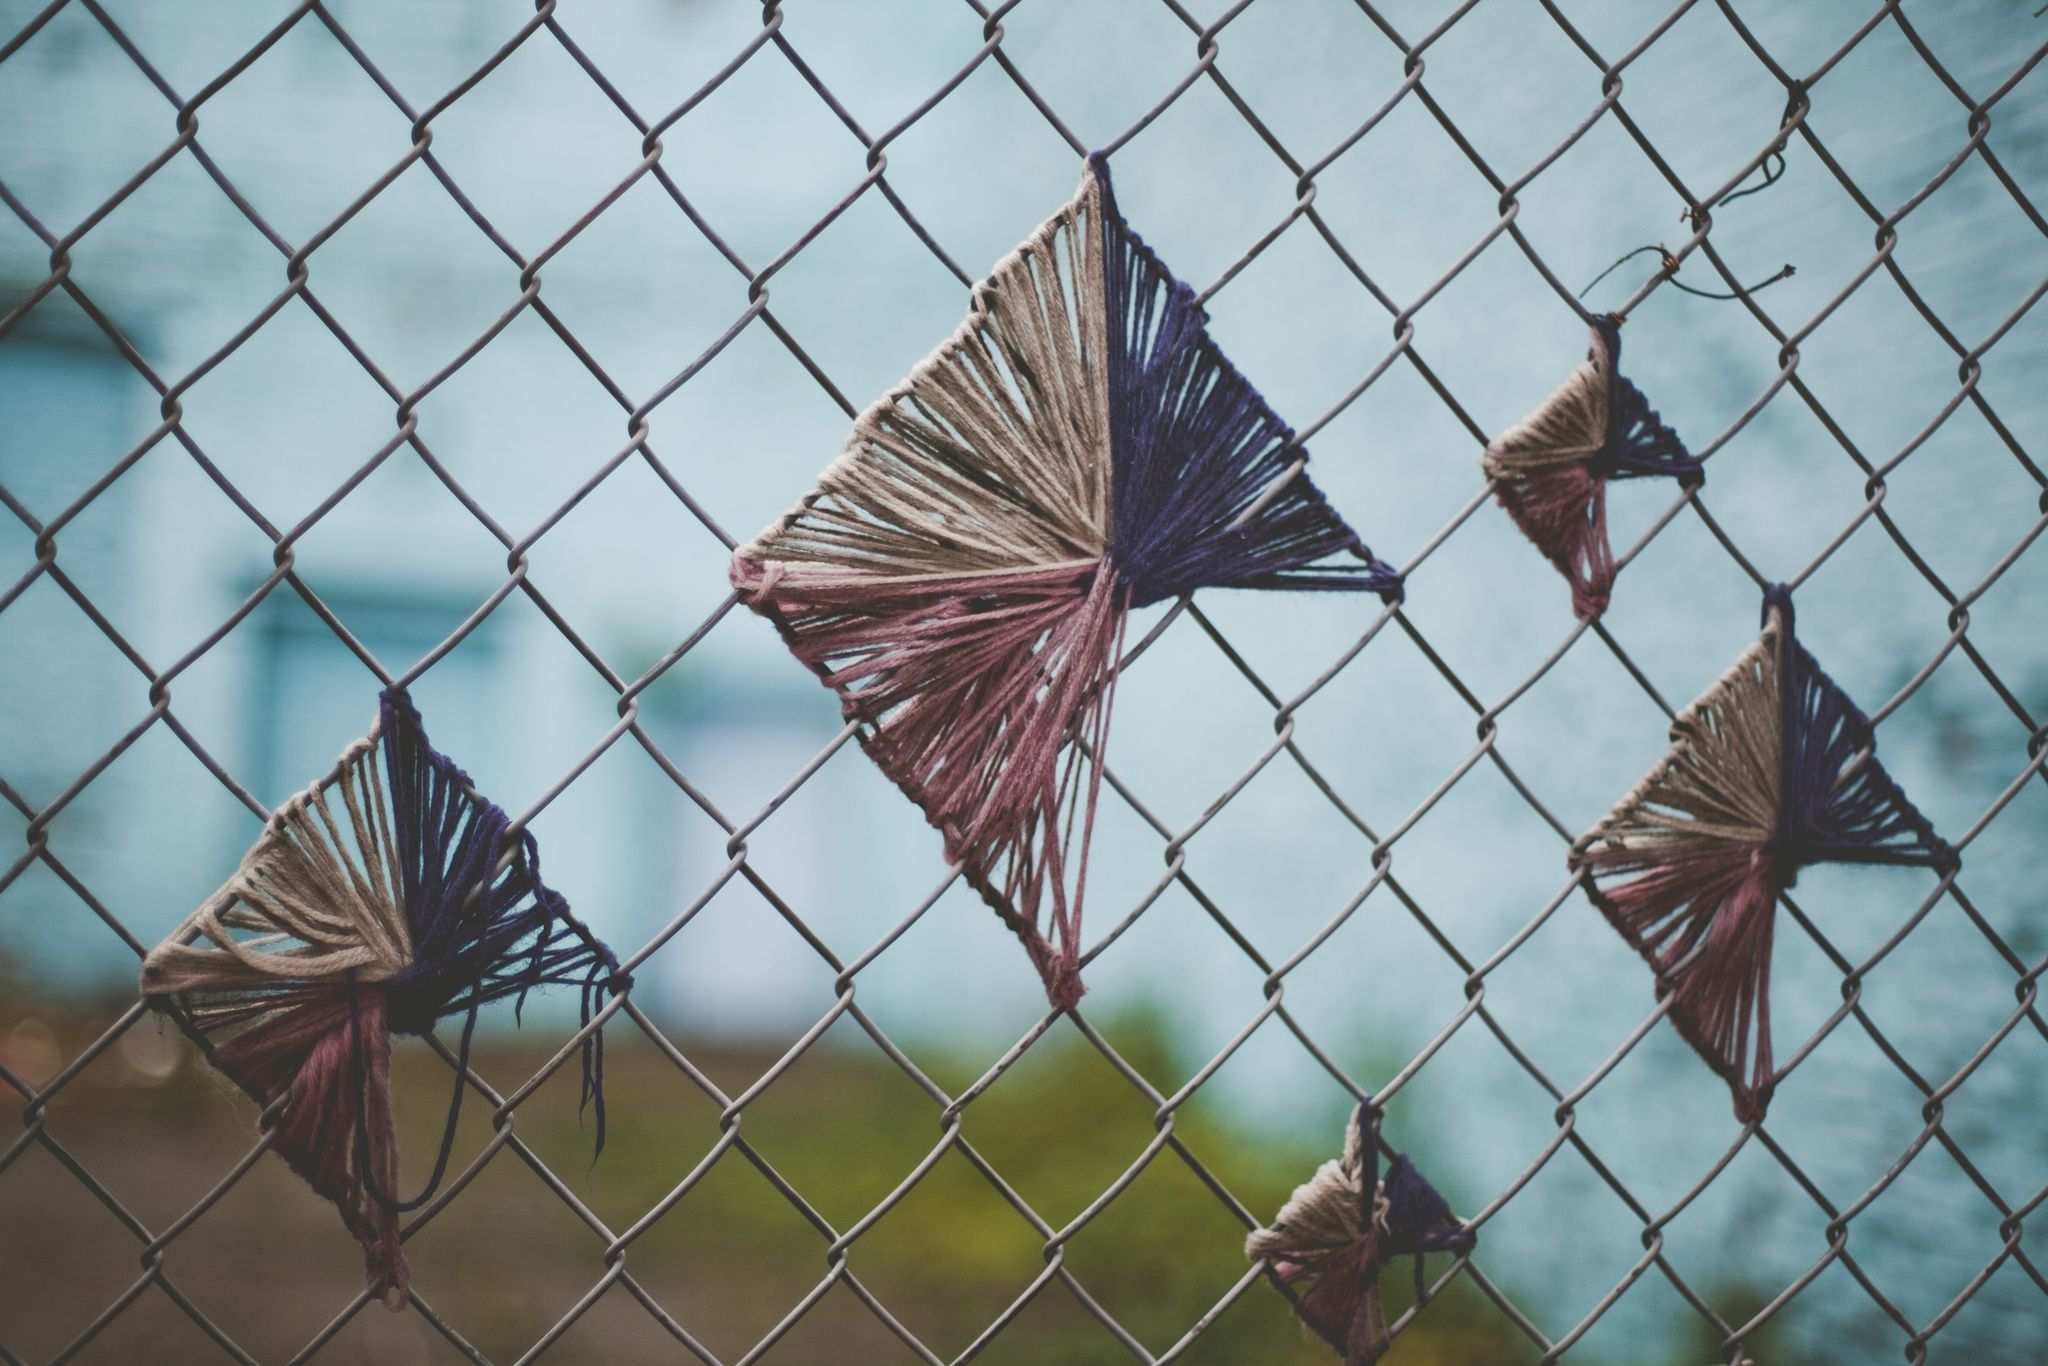 Diy Stretching Chain Link Fence Fence Fabric Fence Chain Link Fence